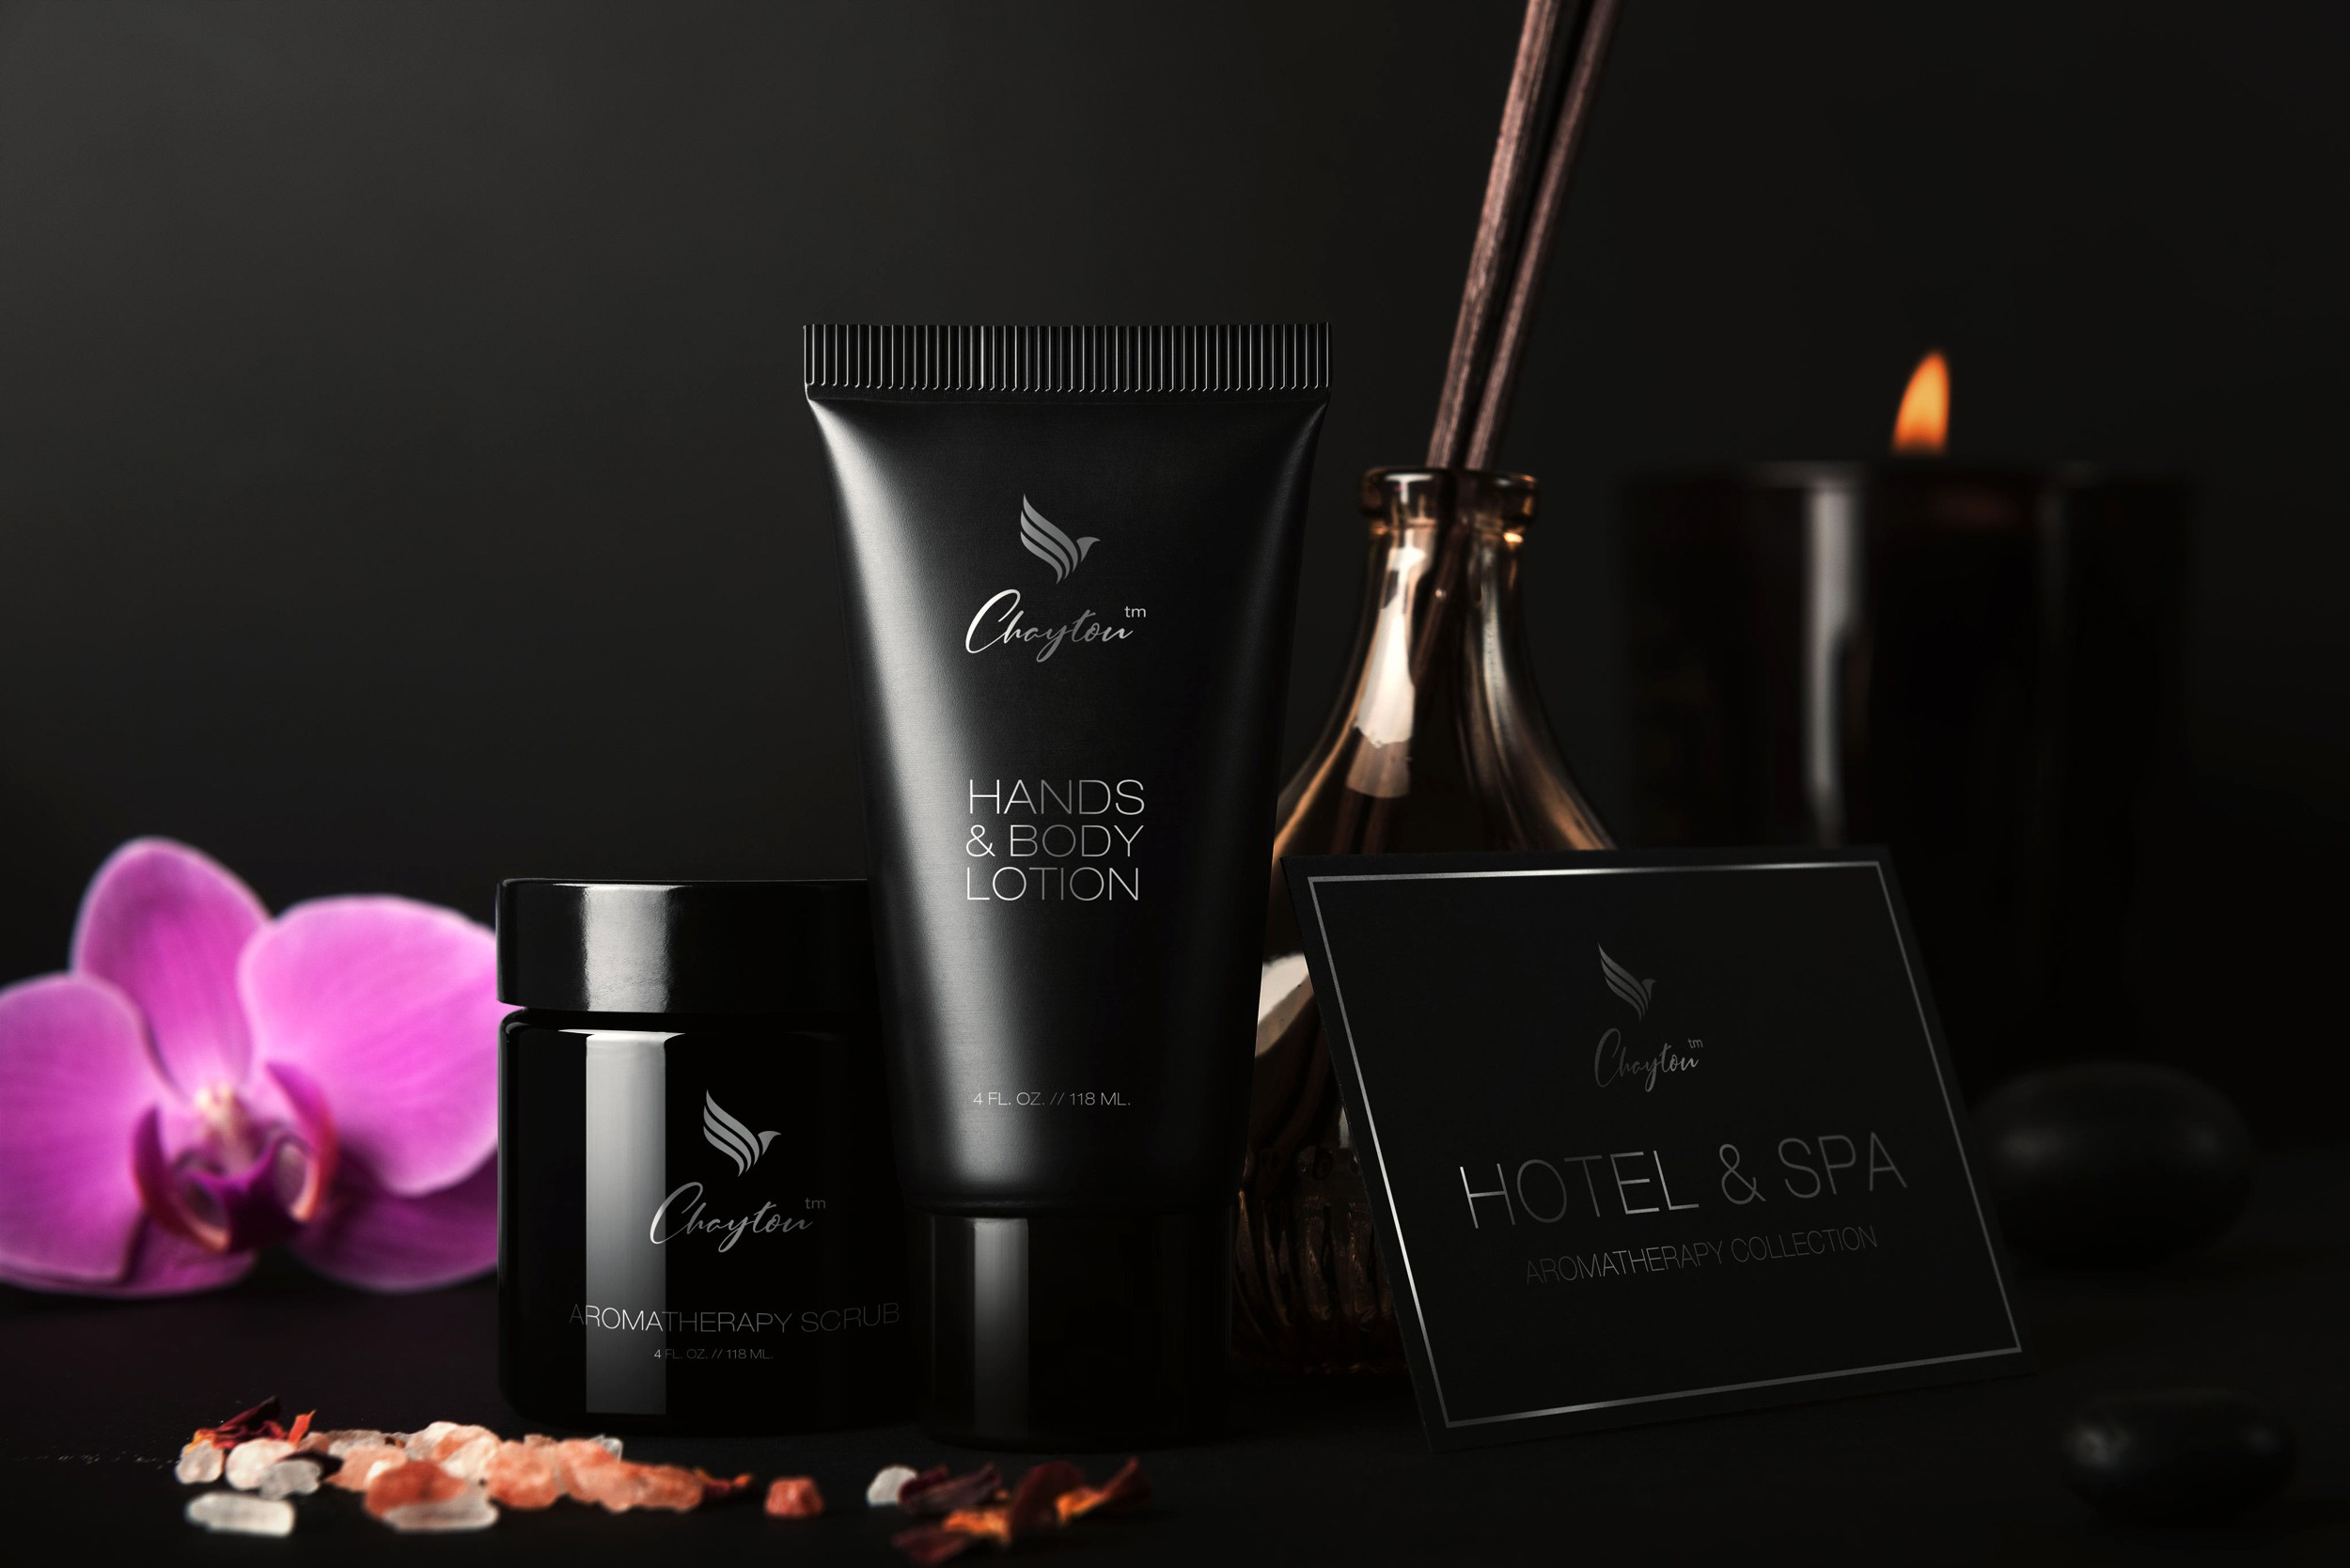 Chayton™ - Luxury Hotel and Spa Amenities